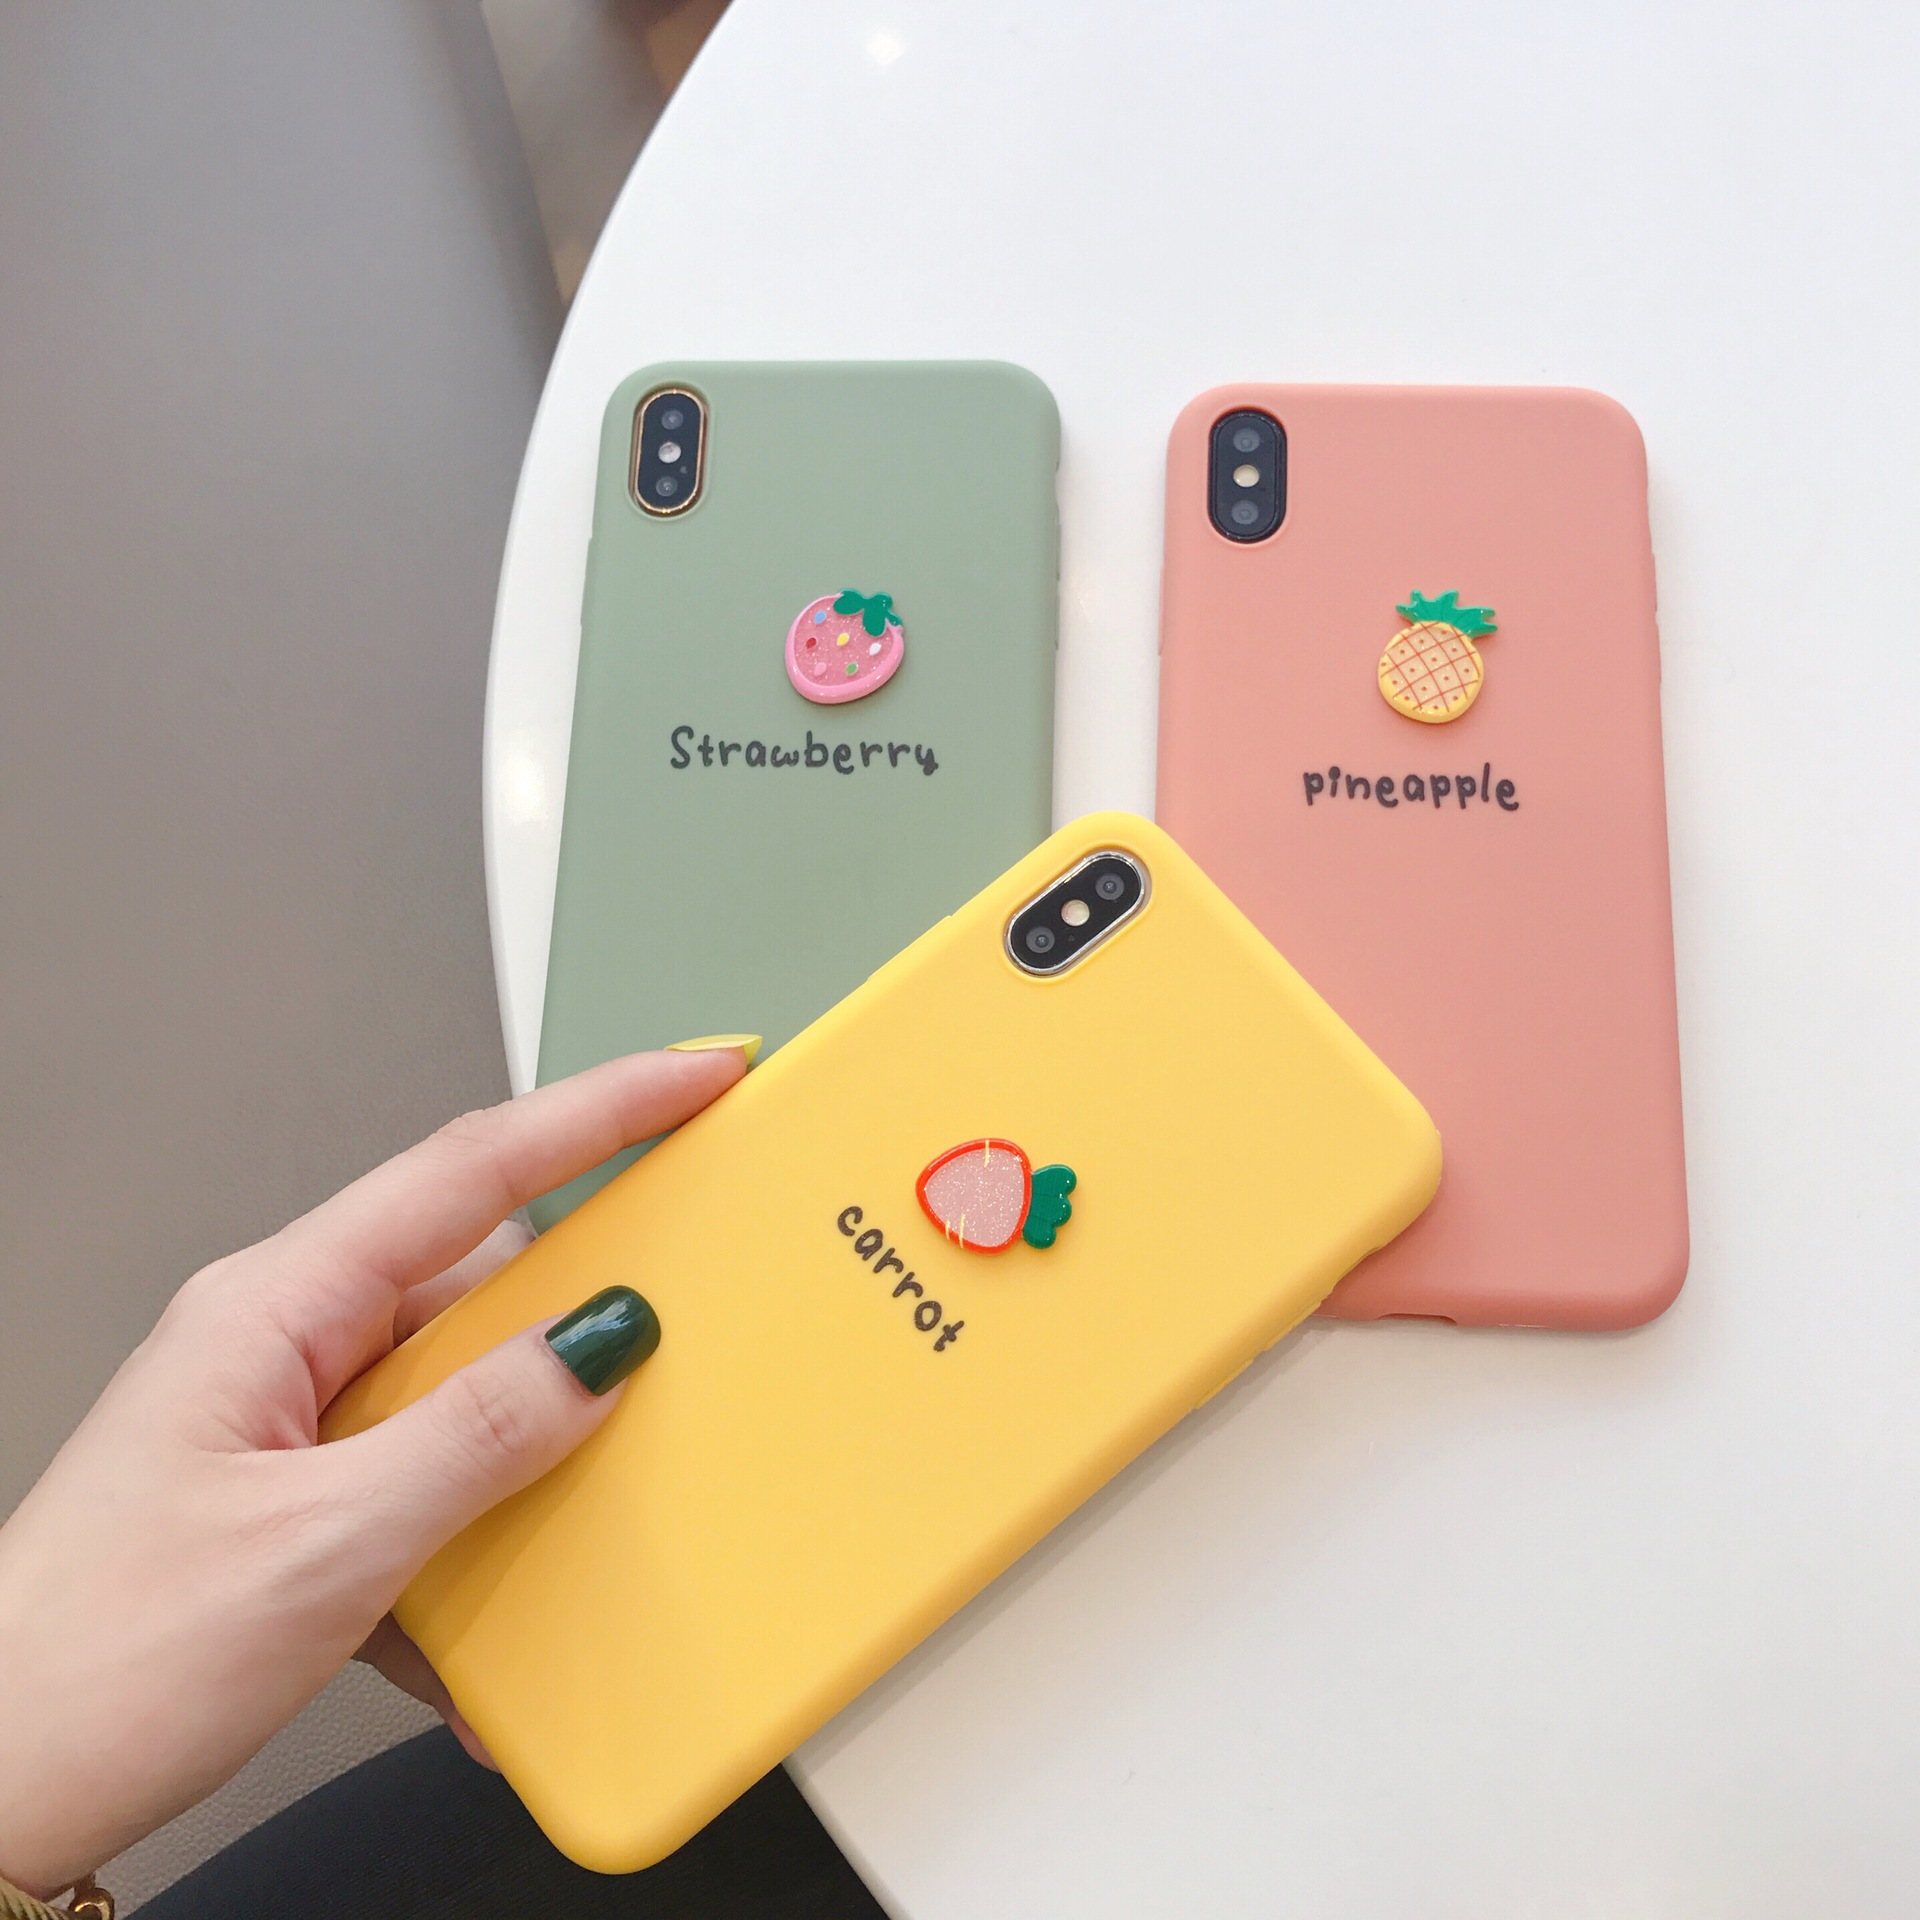 Kawaii 3D carrot Matcha tea green Strawberry cute Phone case for iPhone 7 6s 8 Plus XS Max silicon cover X XR